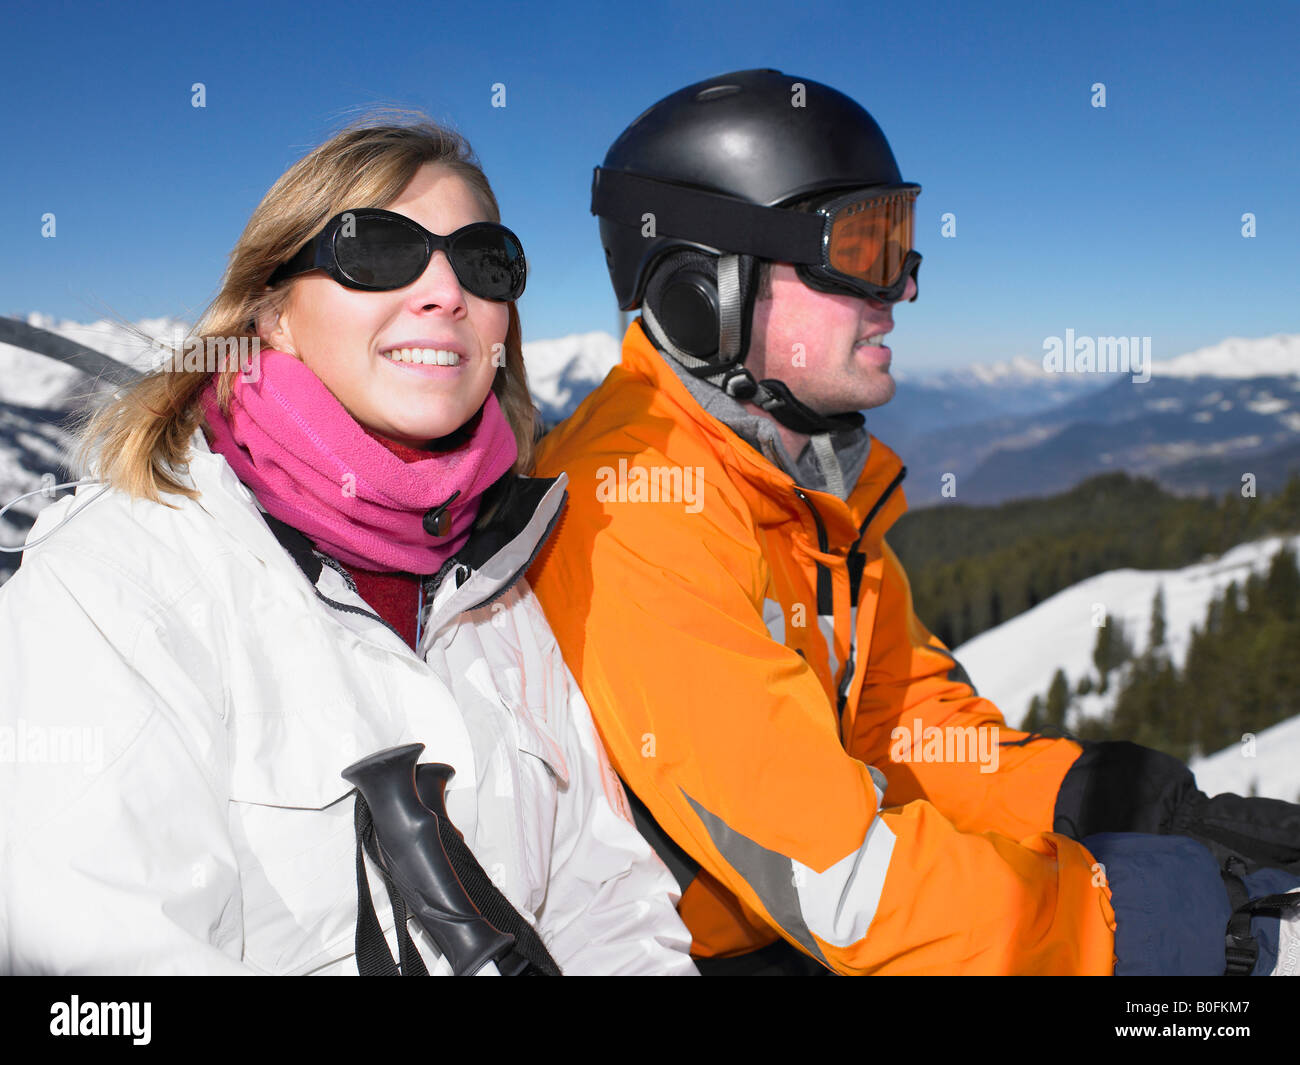 Smiling couple on ski lift - Stock Image